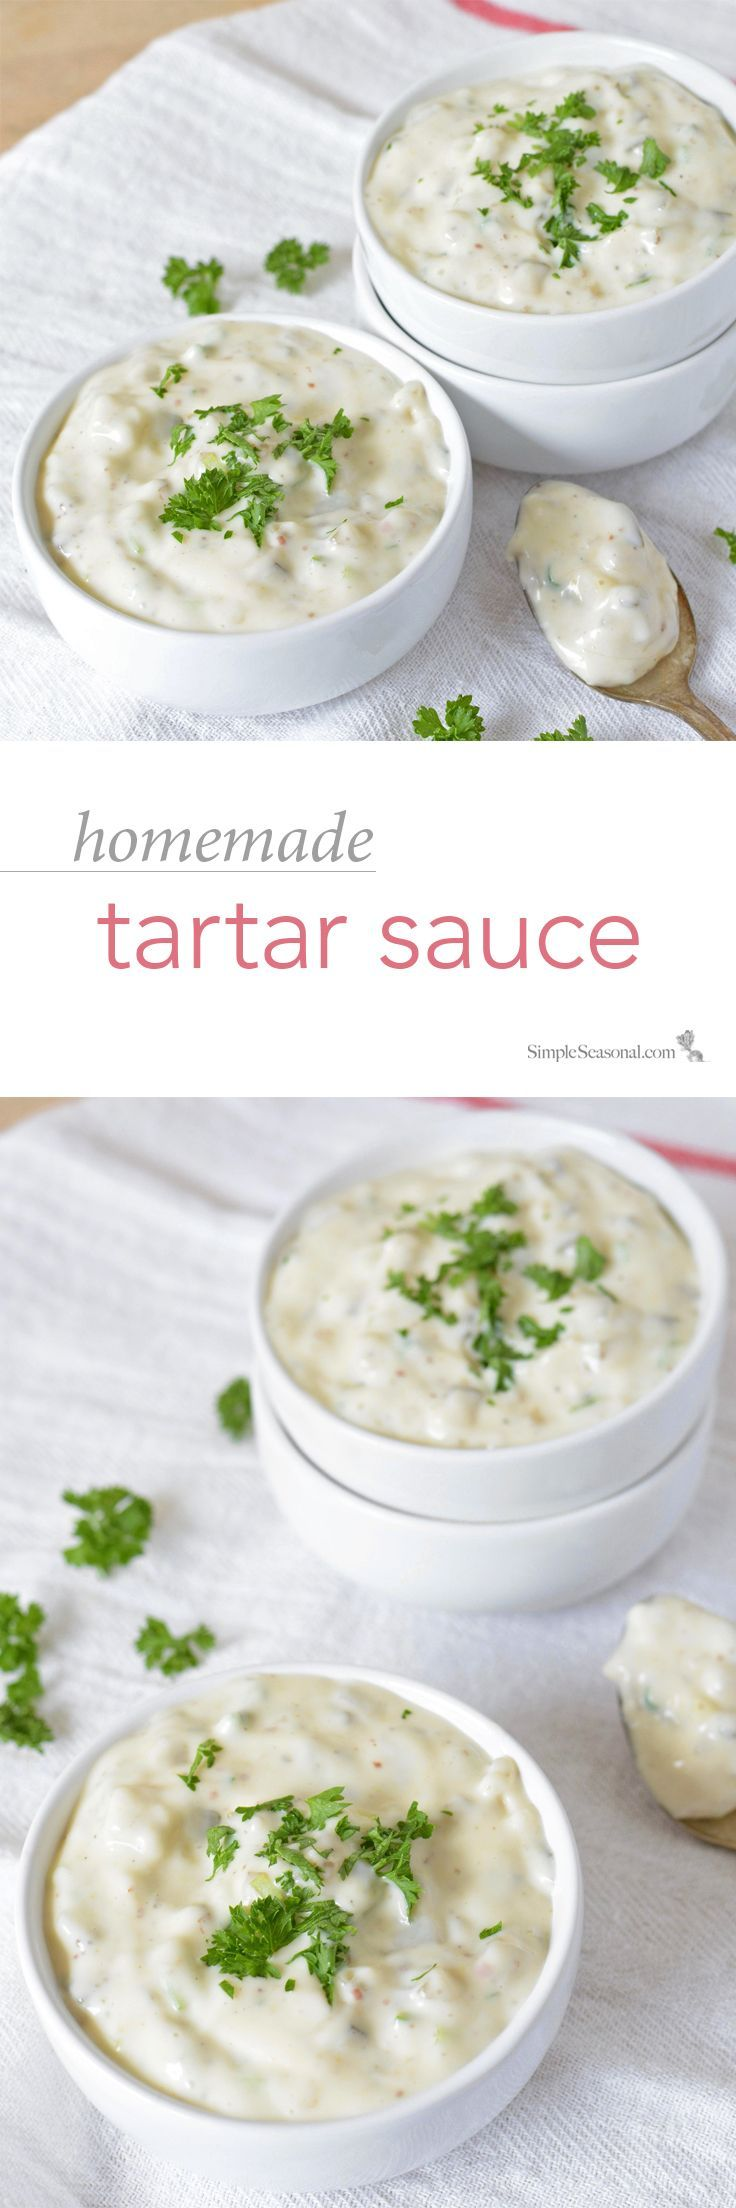 When the bottled stuff just doesn't cut it, this ridiculously easy recipe will give you restaurant-quality tartar sauce in just minutes flat!